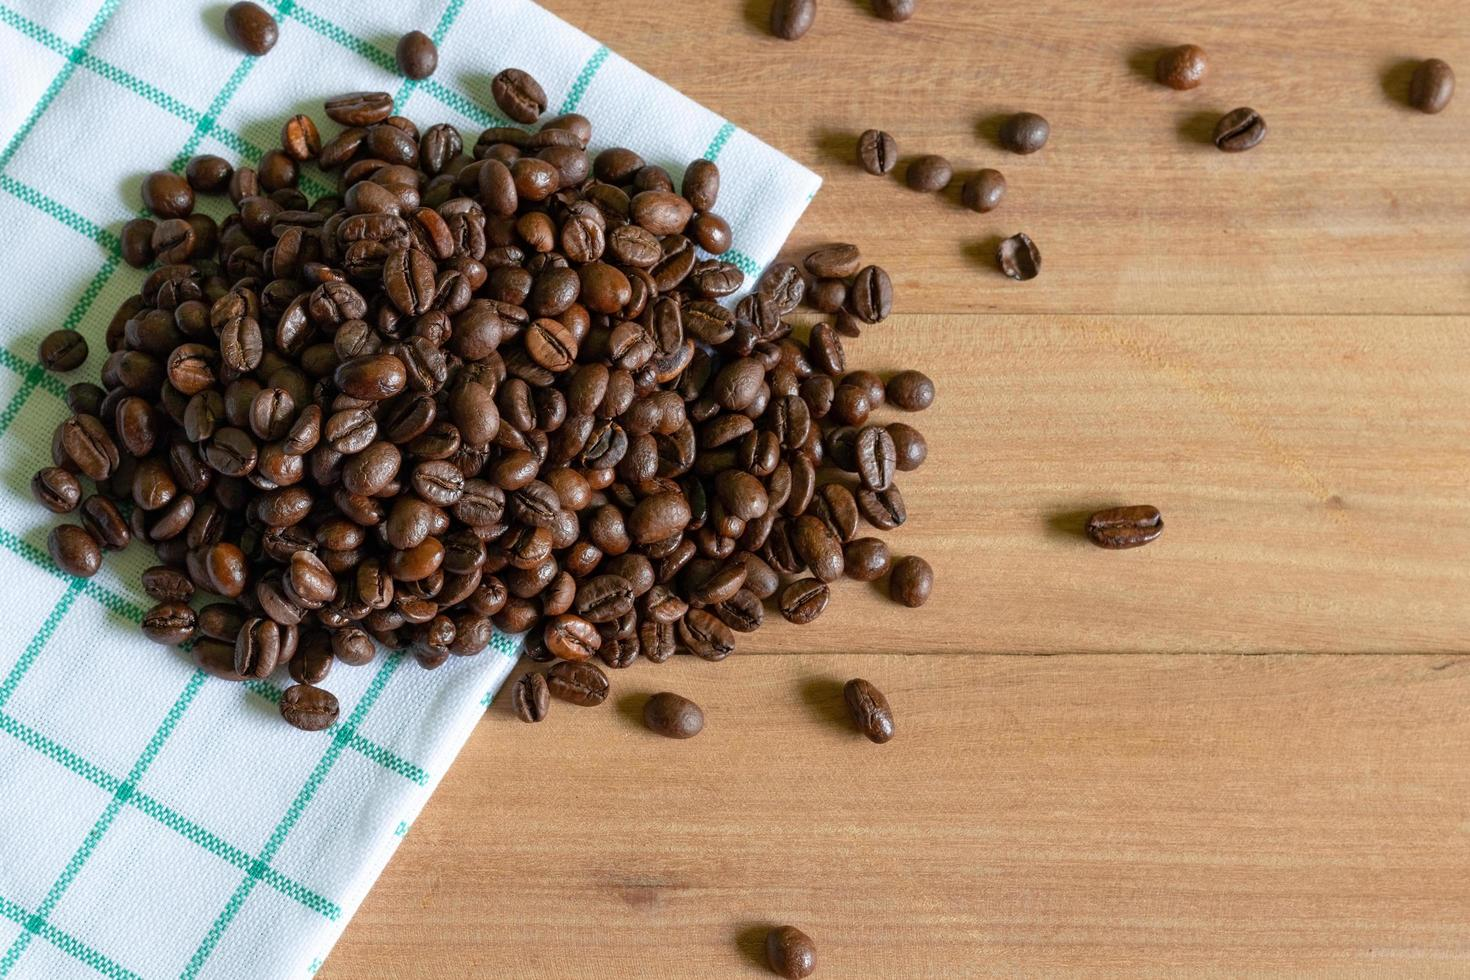 Roasted coffee beans on wooden background photo